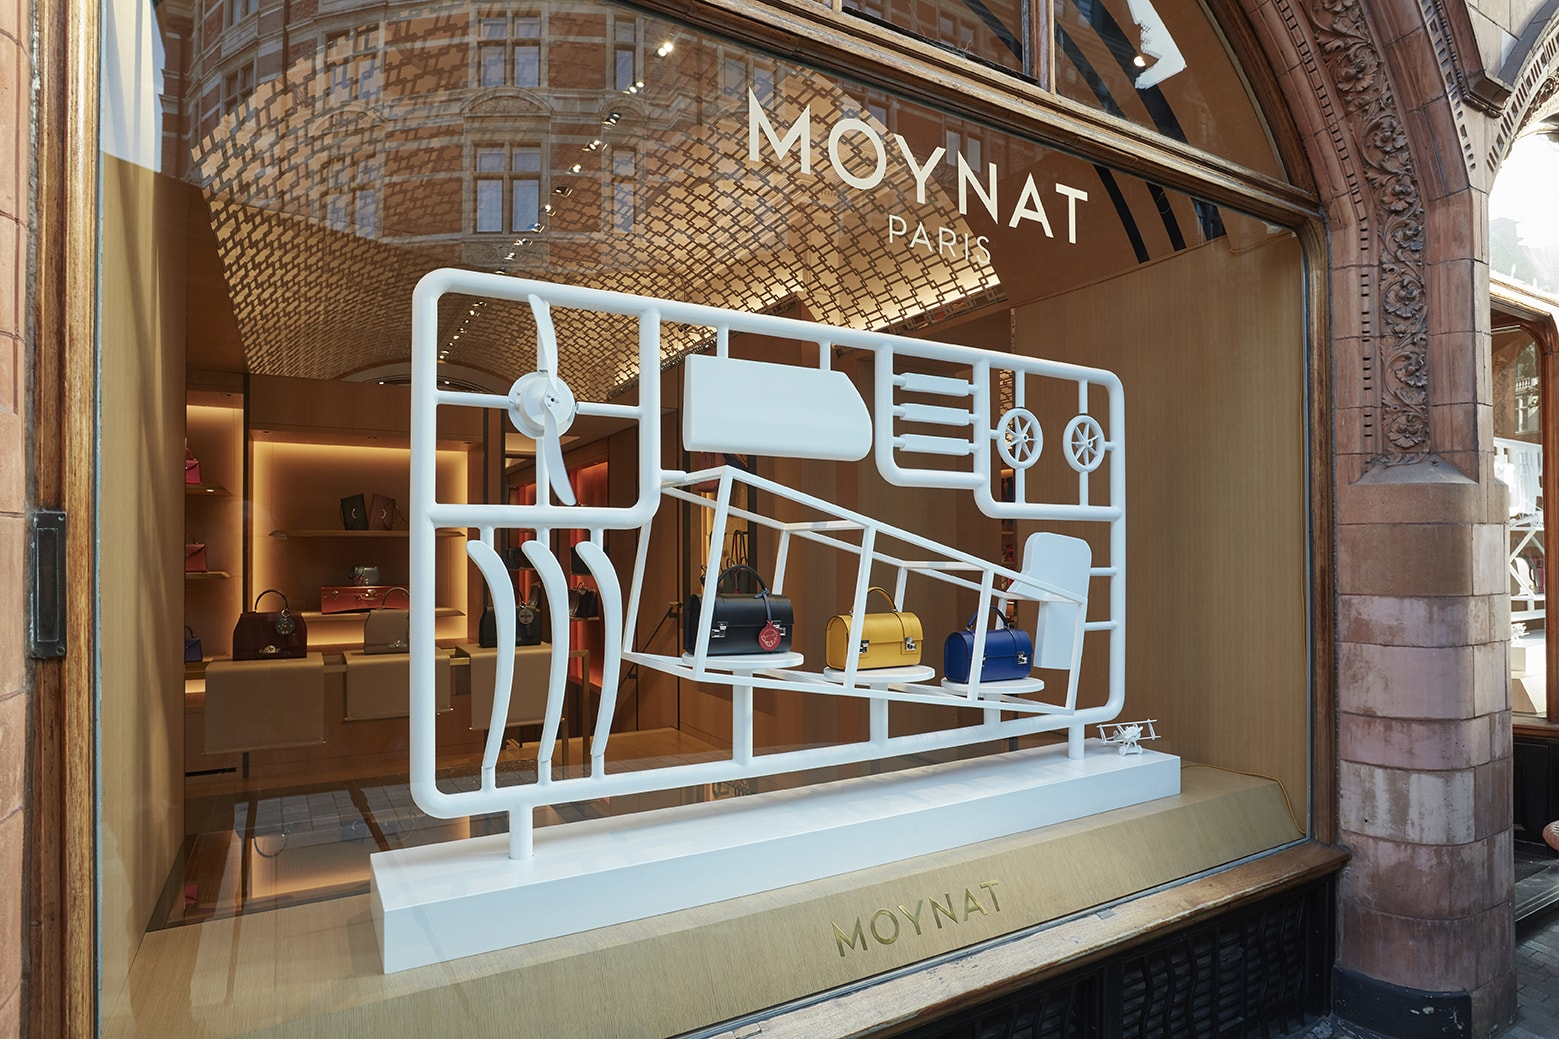 Moynat: Mount Street & Selfridges, London